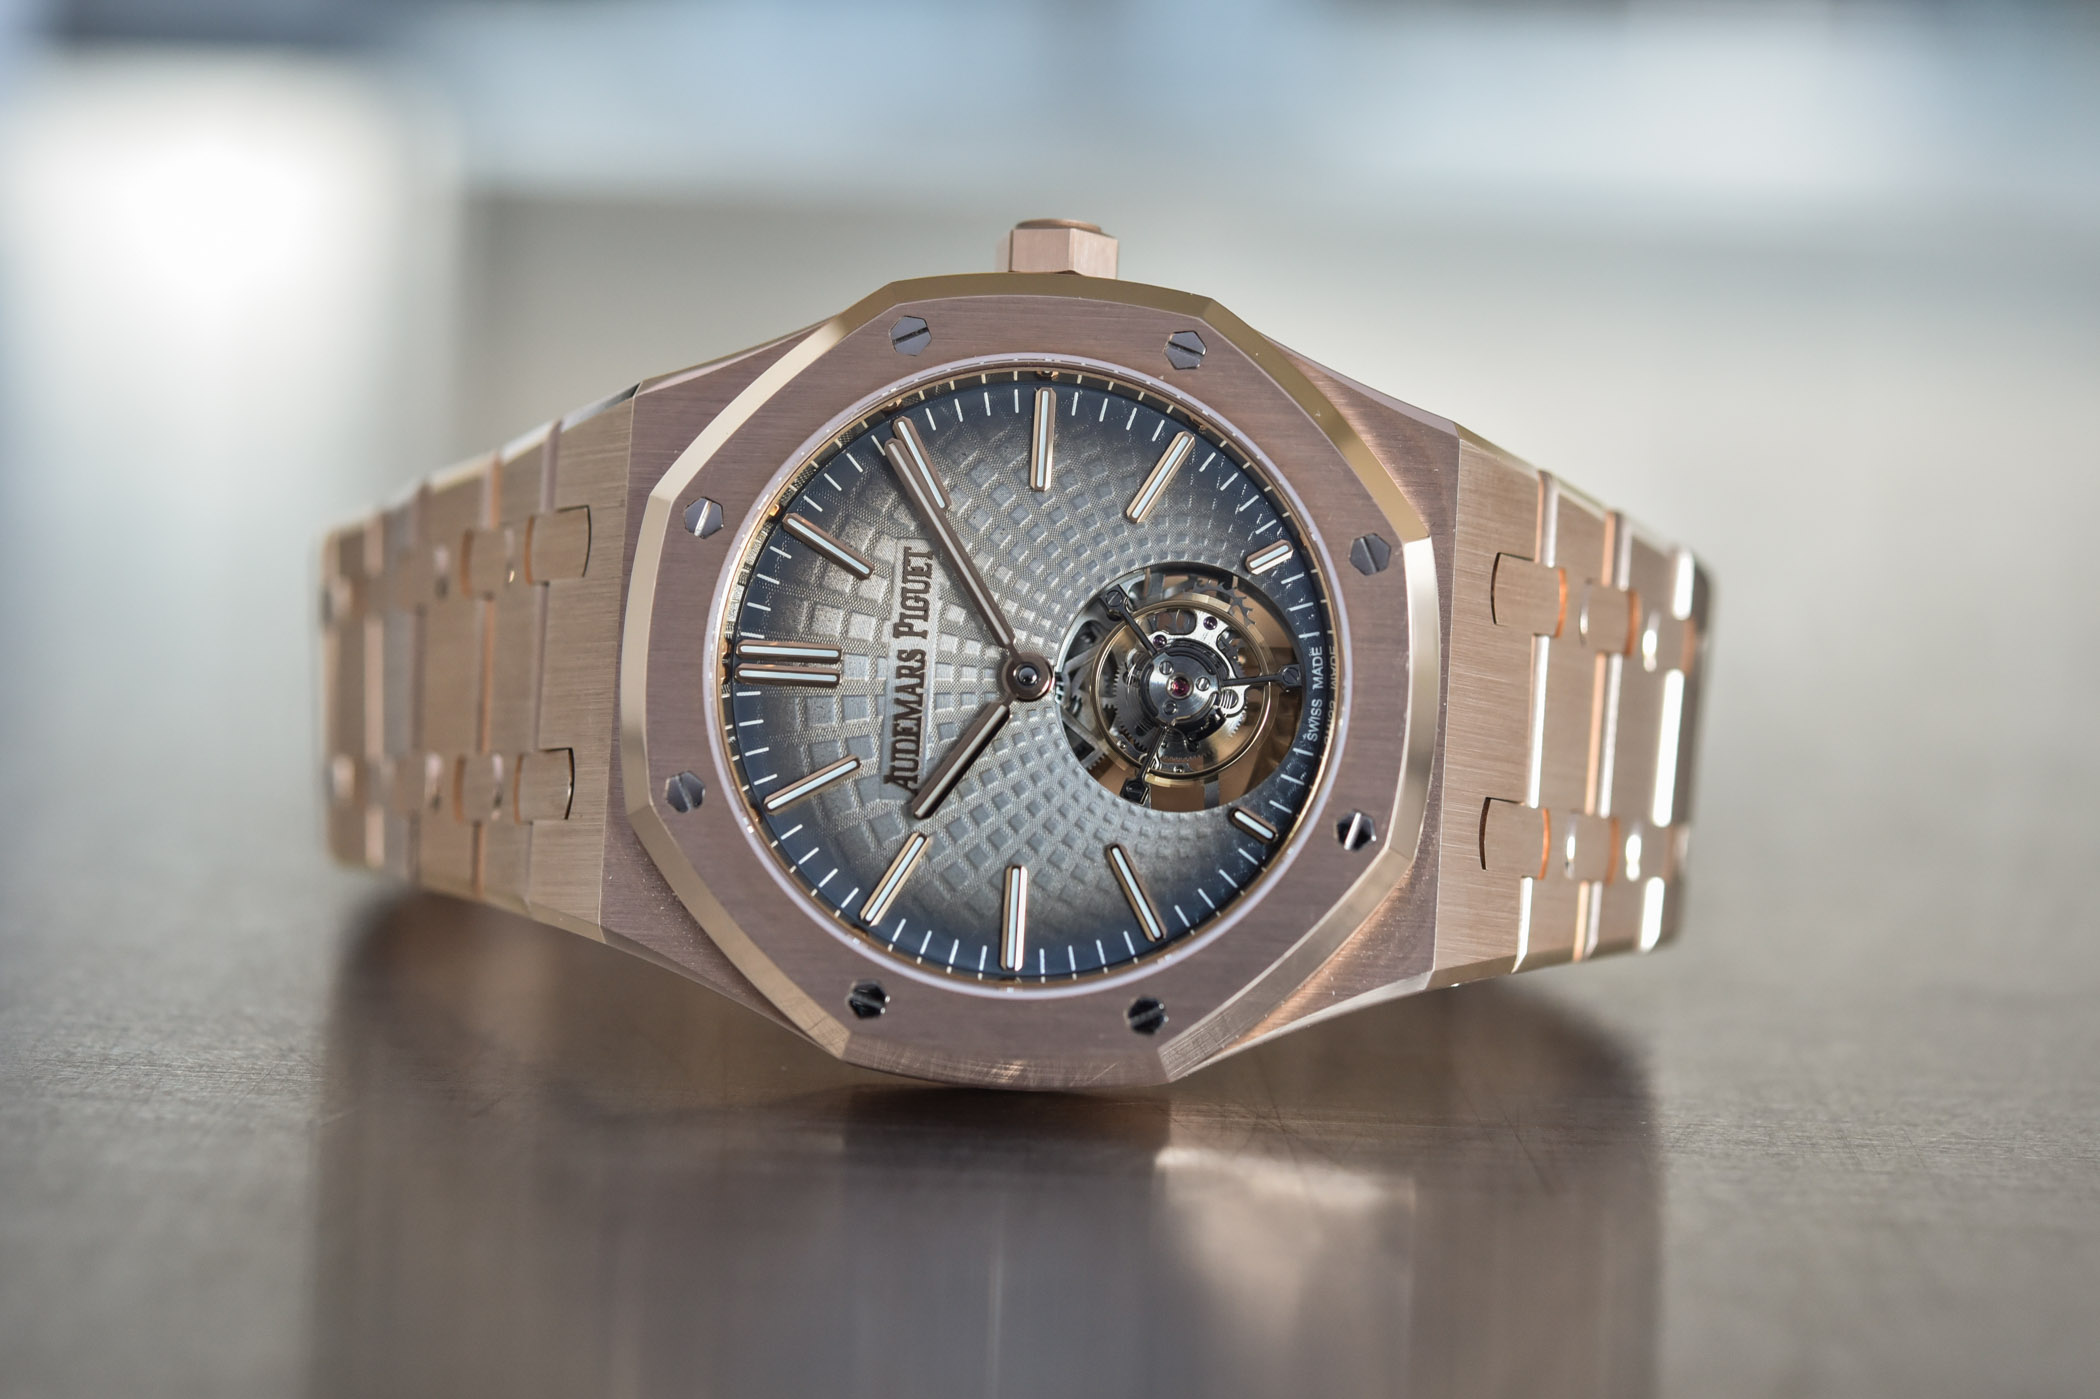 Audemars Piguet Royal Oak Selfwinding Flying Tourbillon Gold 26530OR